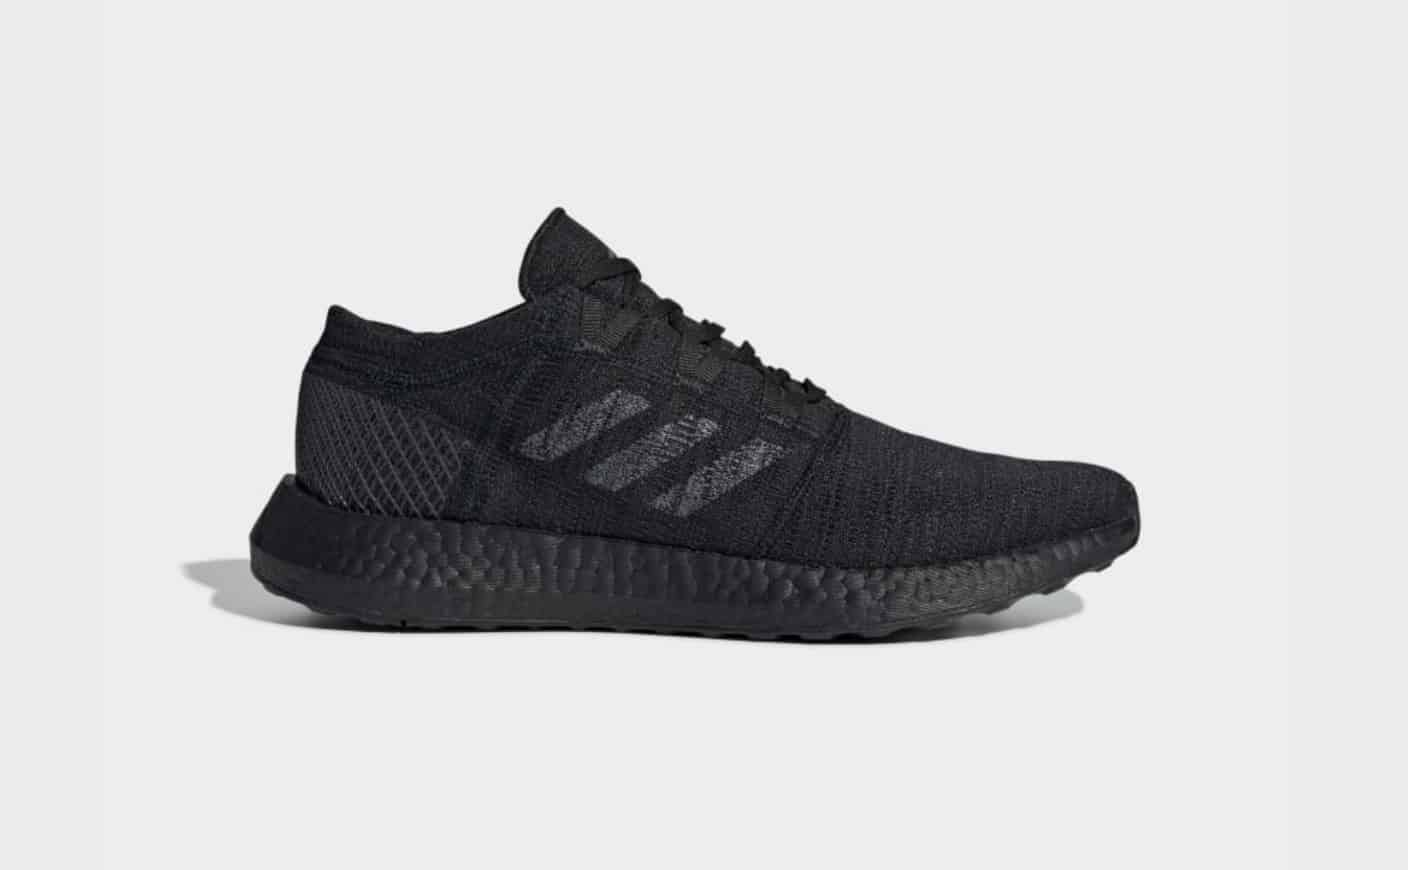 Pureboost Go Shoes | Sneakers to Buy in the US | OPAS